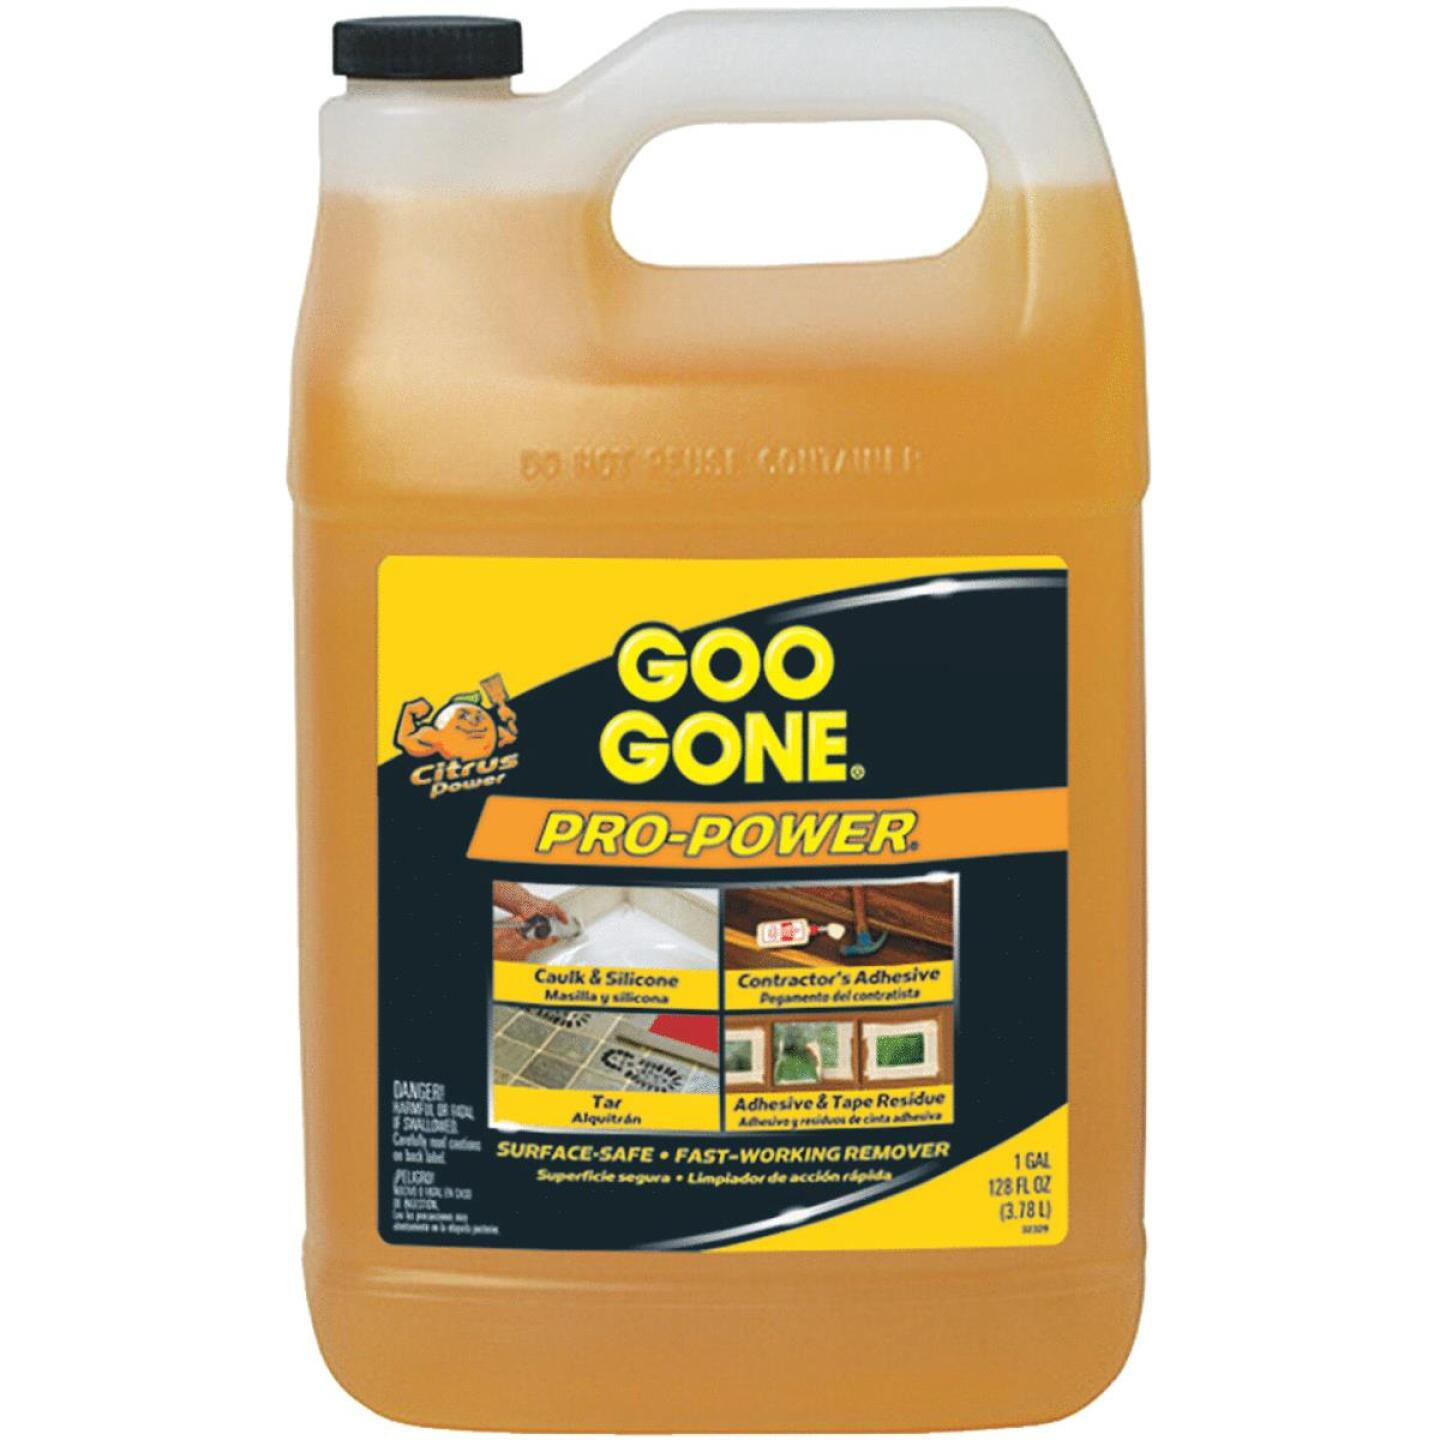 Goo Gone 1 Gal. Pro-Power Adhesive Remover Image 228